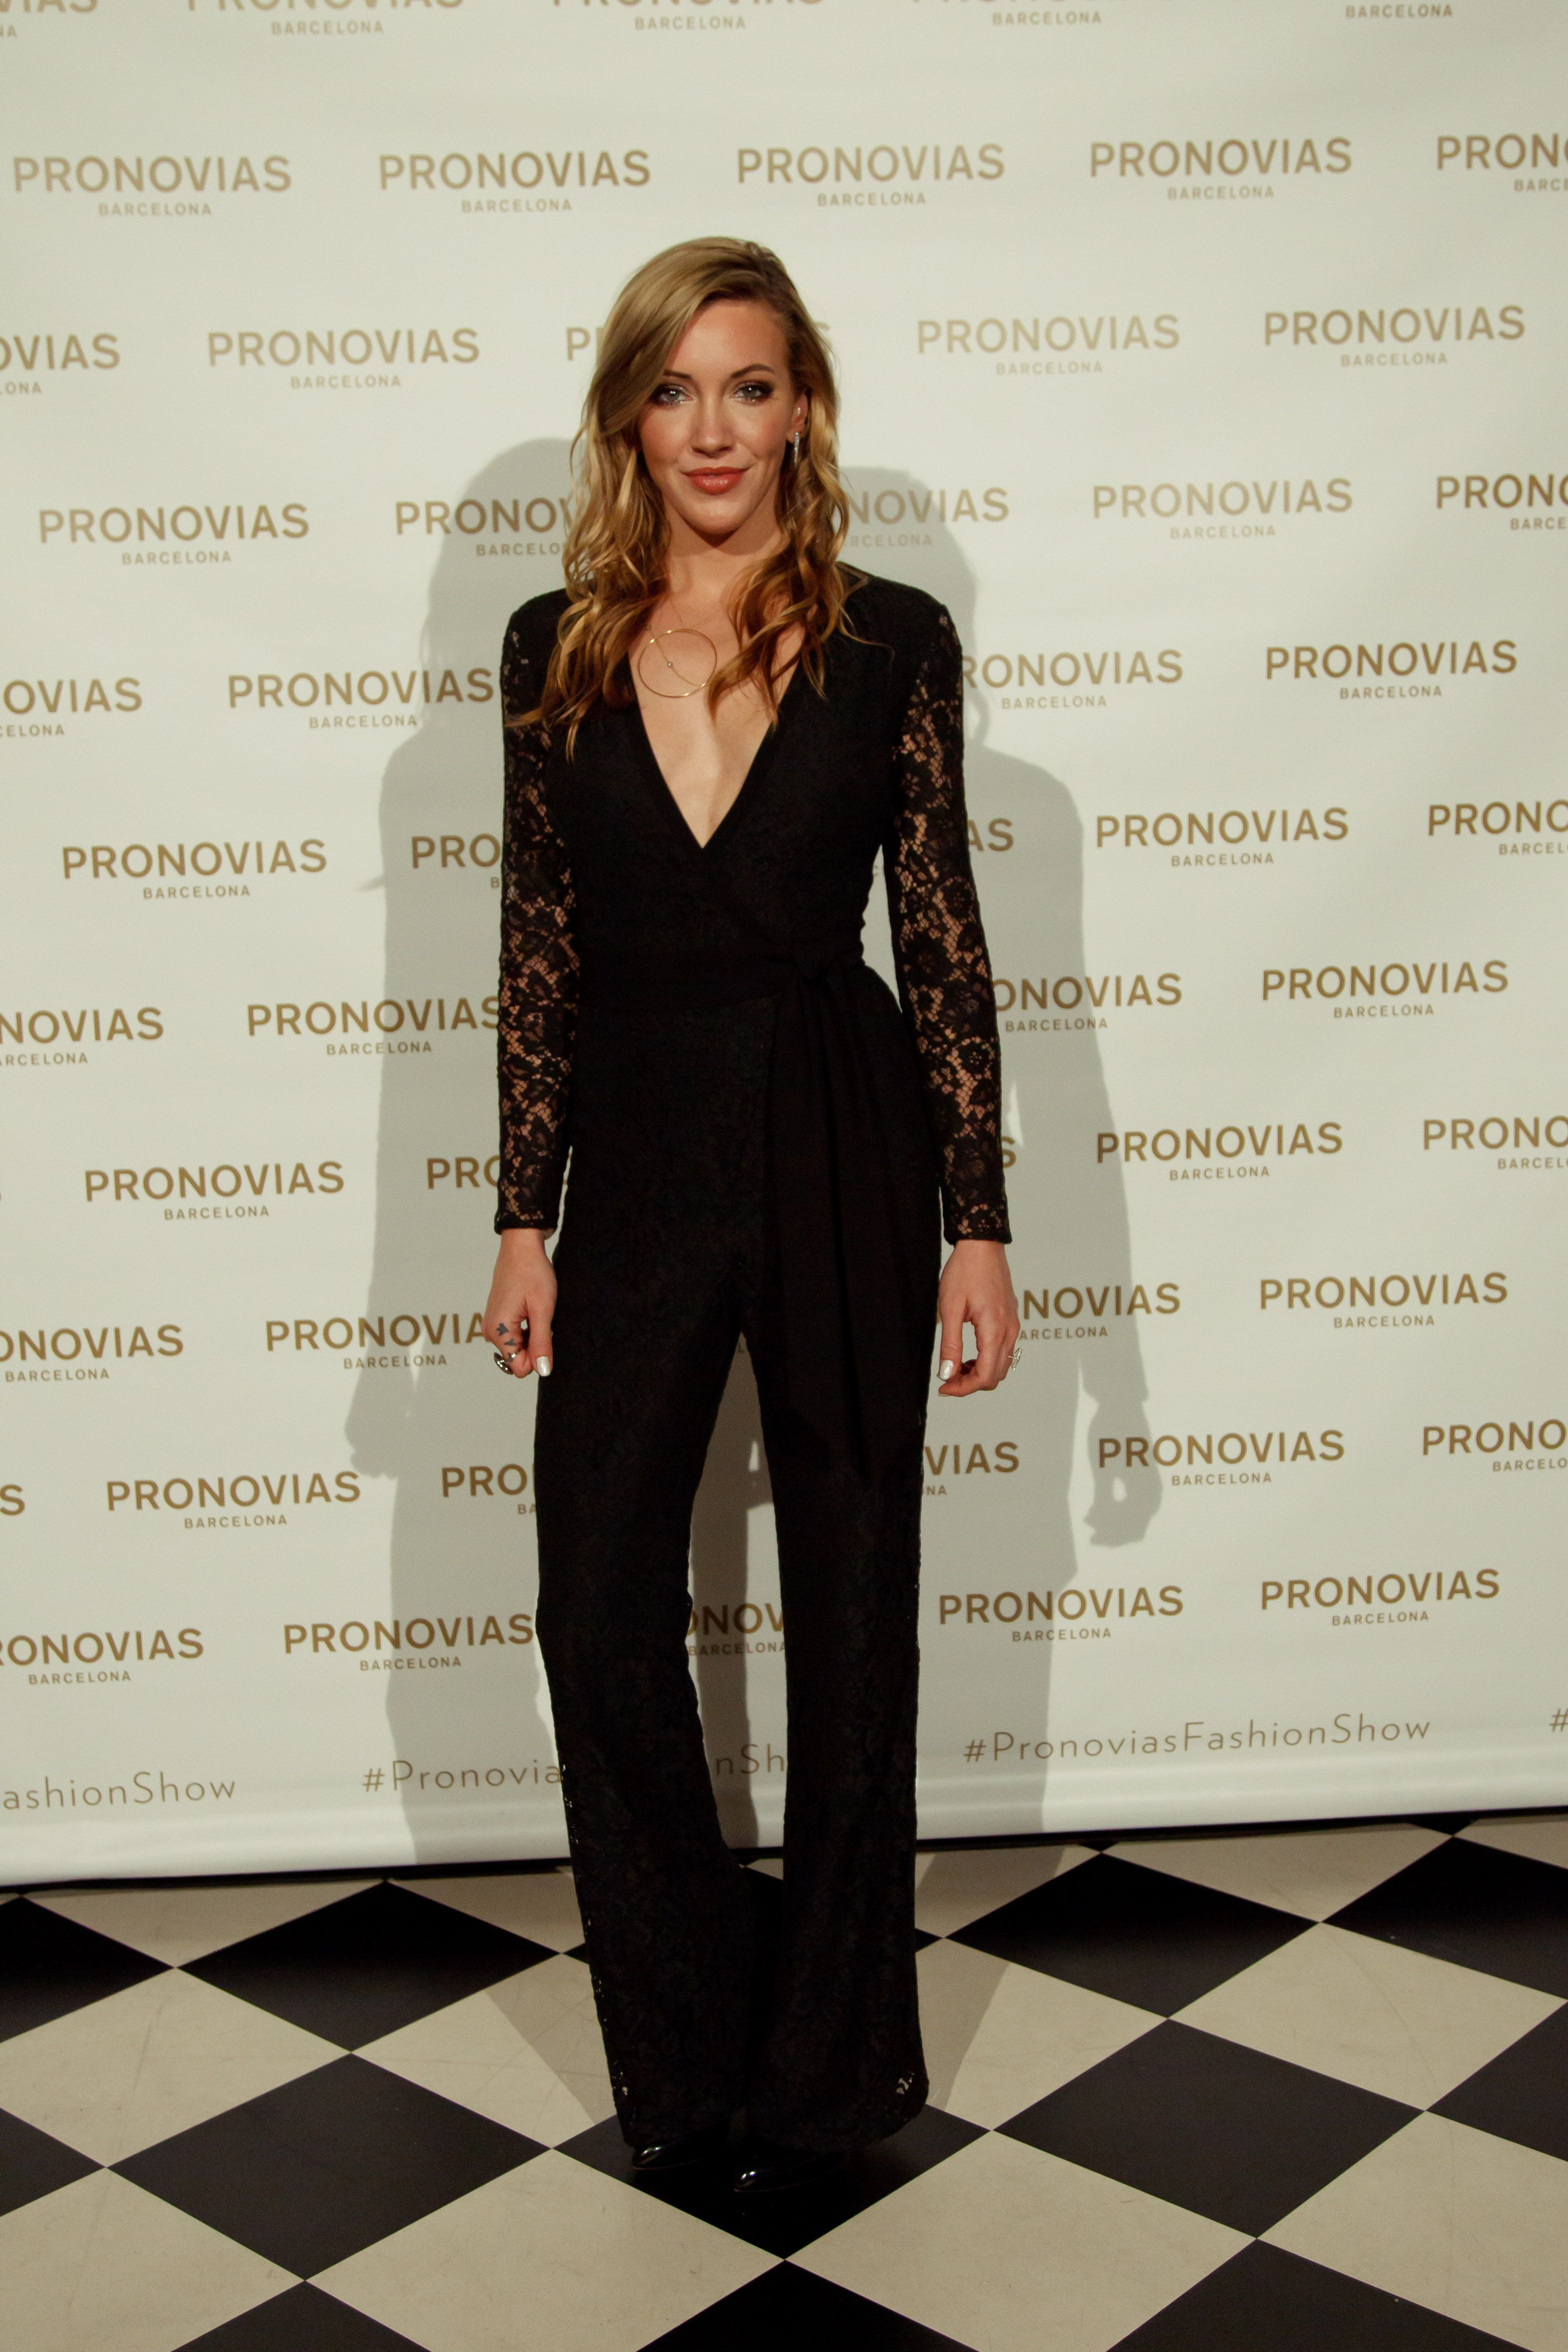 Katie Cassidy in GRACIOLA jumpsuit from PRONOVIAS | NYC SHOW 2018 ...